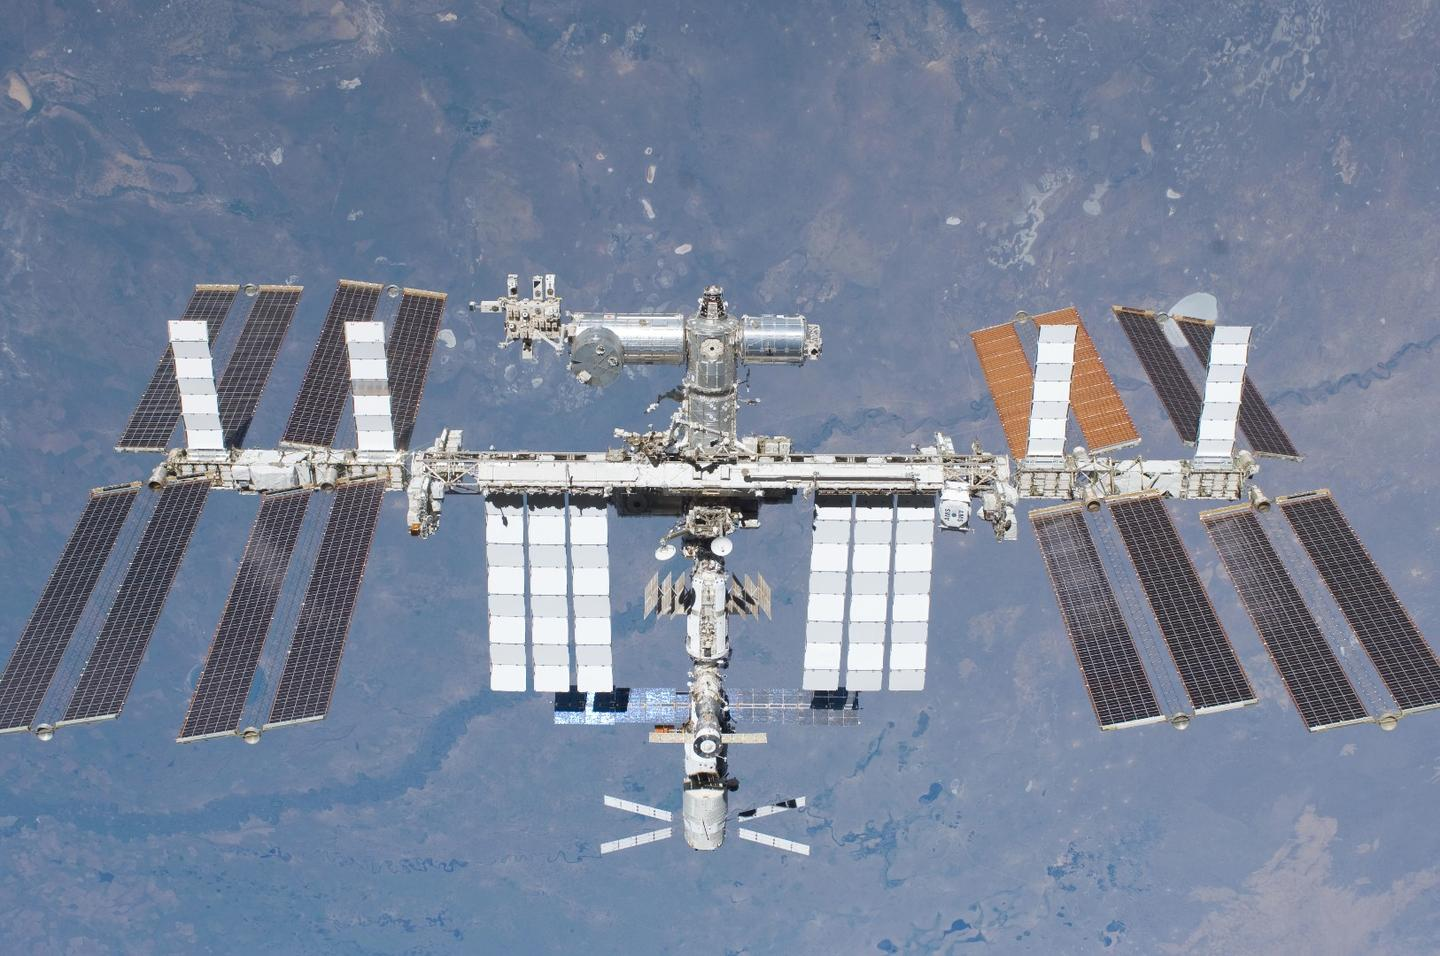 NASA hopes that the unique capabilities and research opportunities of the ISS will be appealing to the private sector